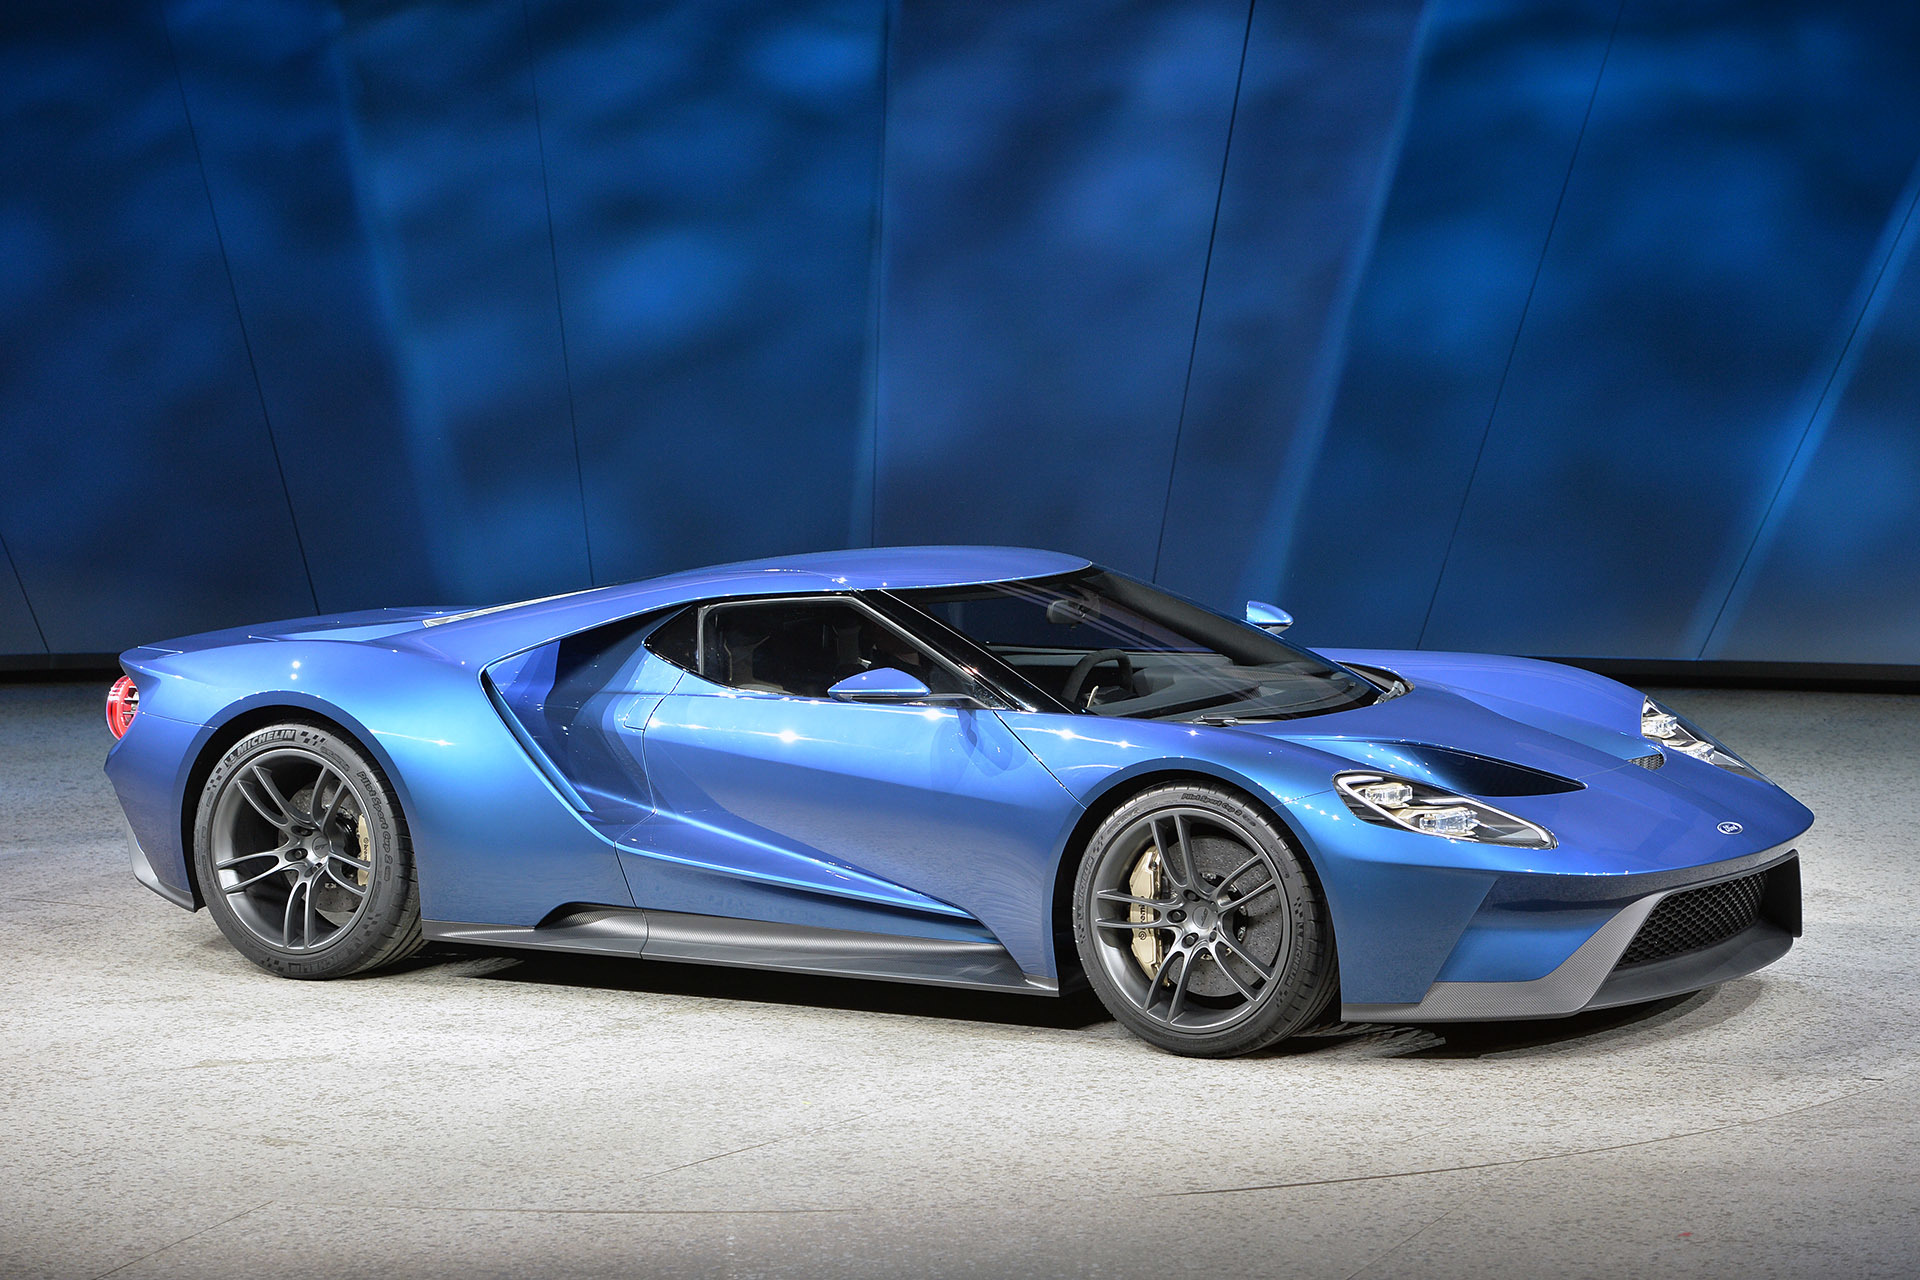 Honda Civic New >> Ford GT concept unveiled at the Detroit Auto Show - PakWheels Blog